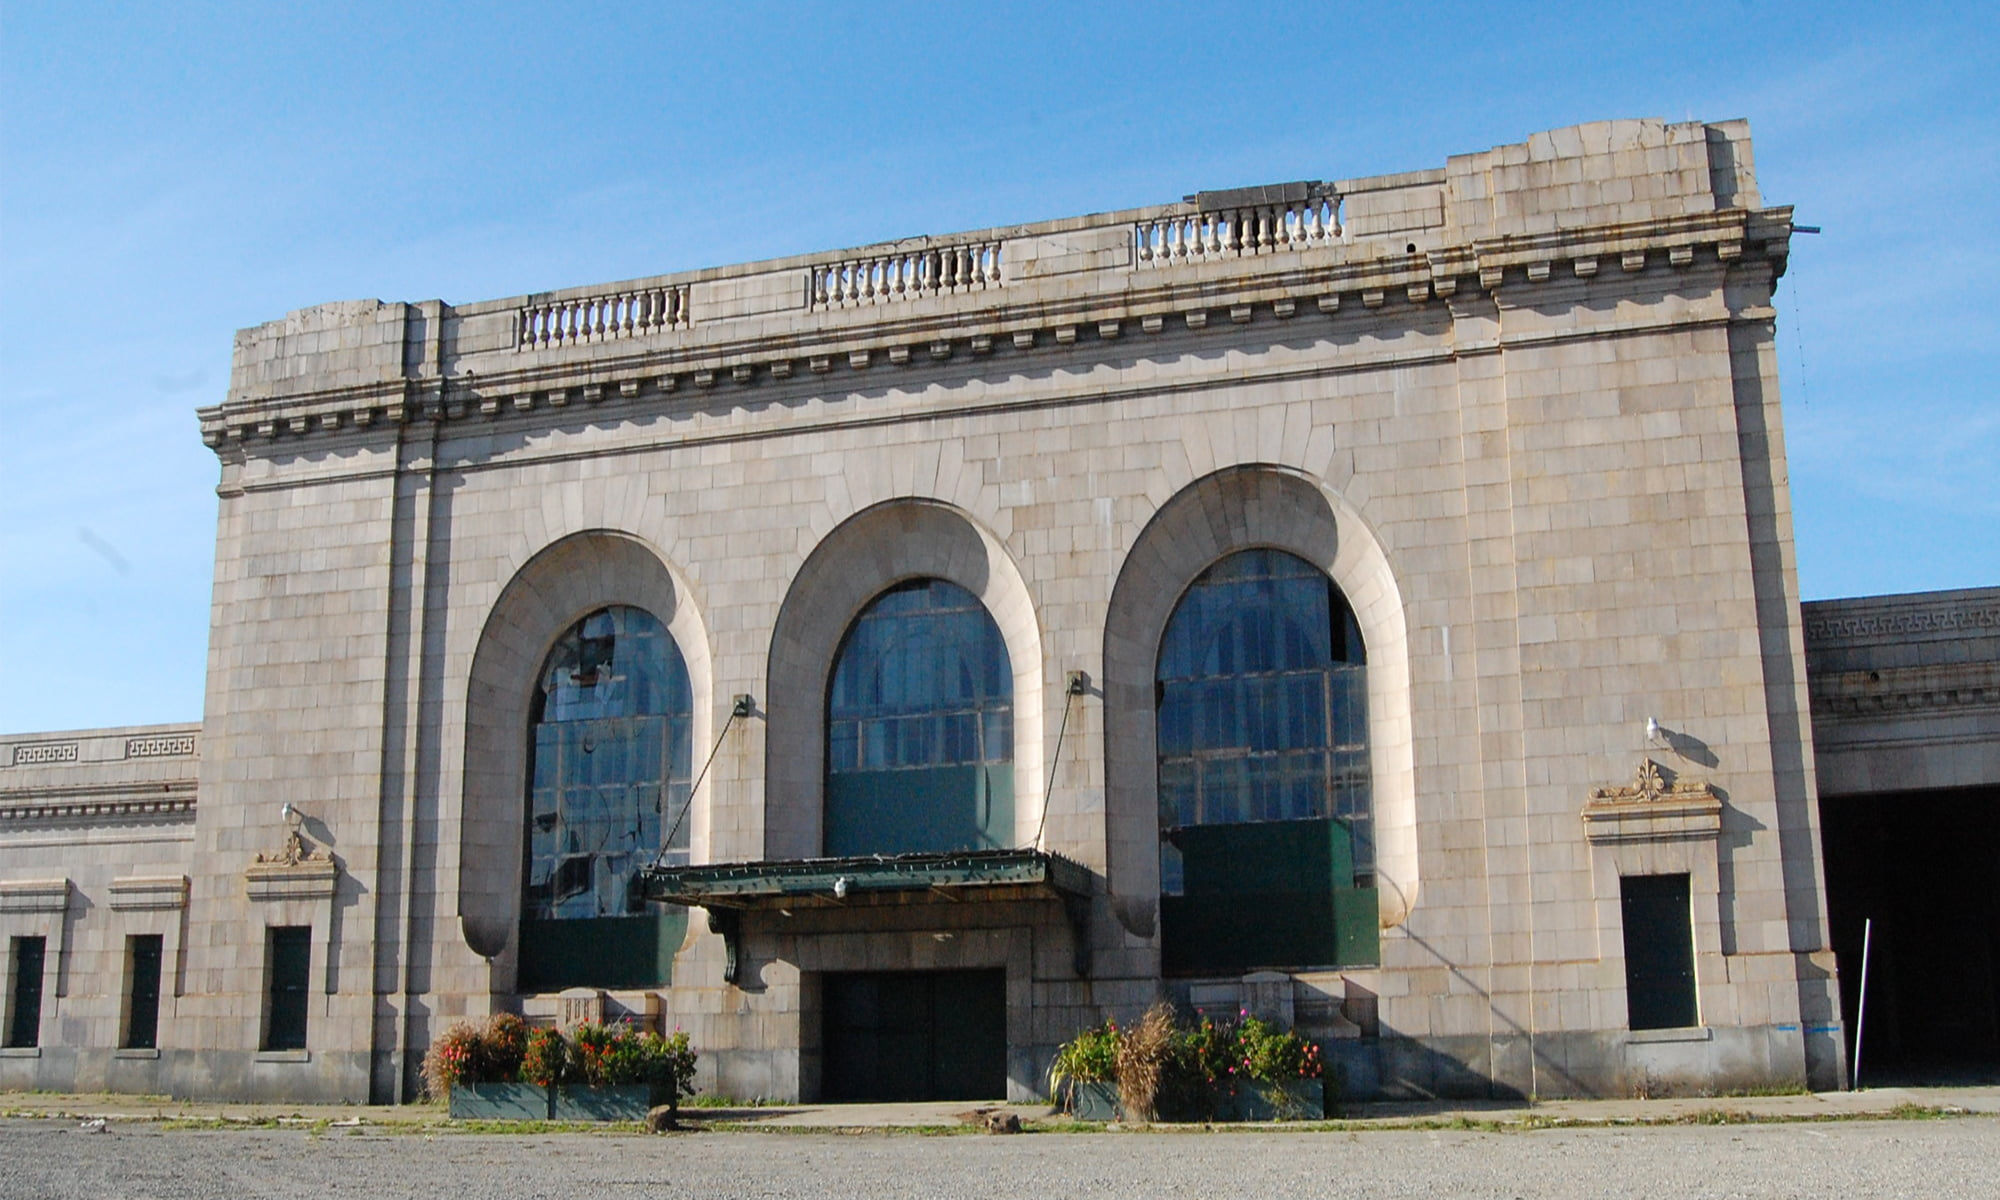 16th Street Train Station